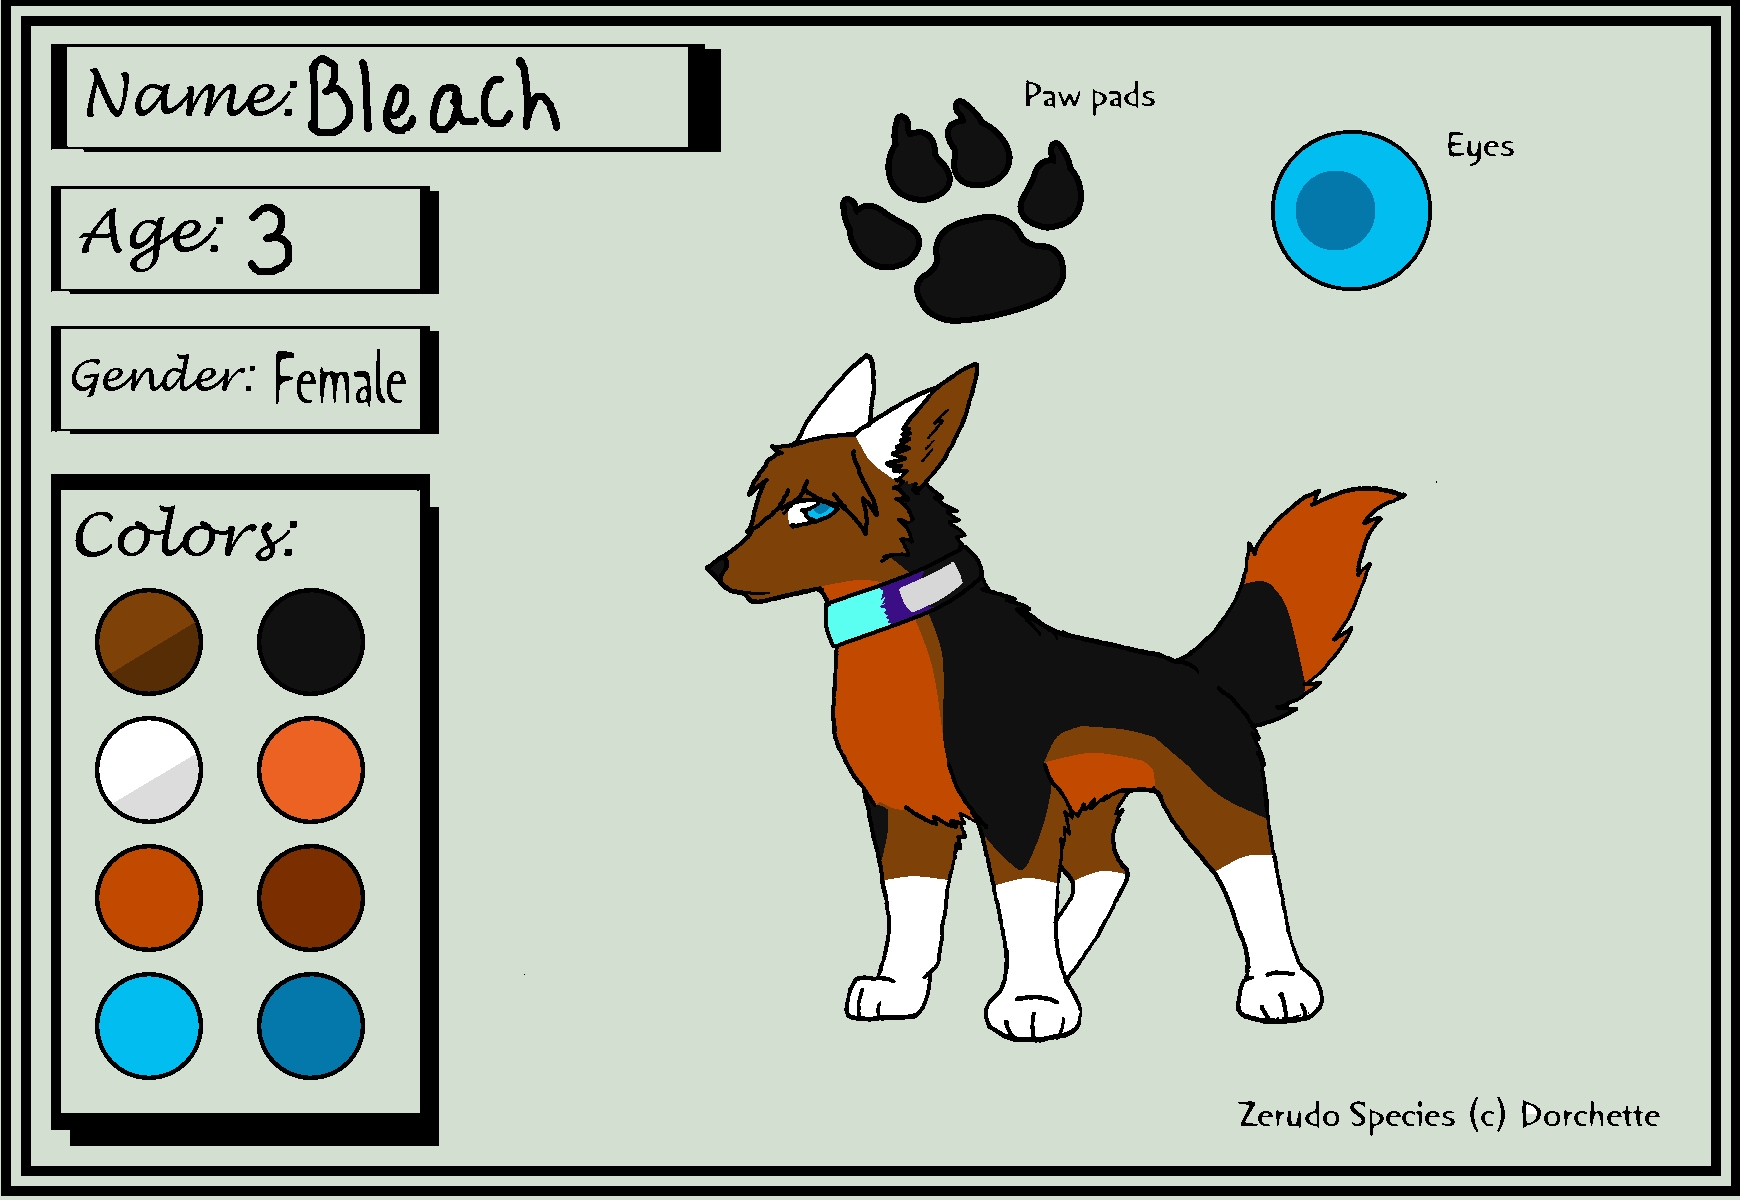 Bleach as a pup 2 by King-Icarus